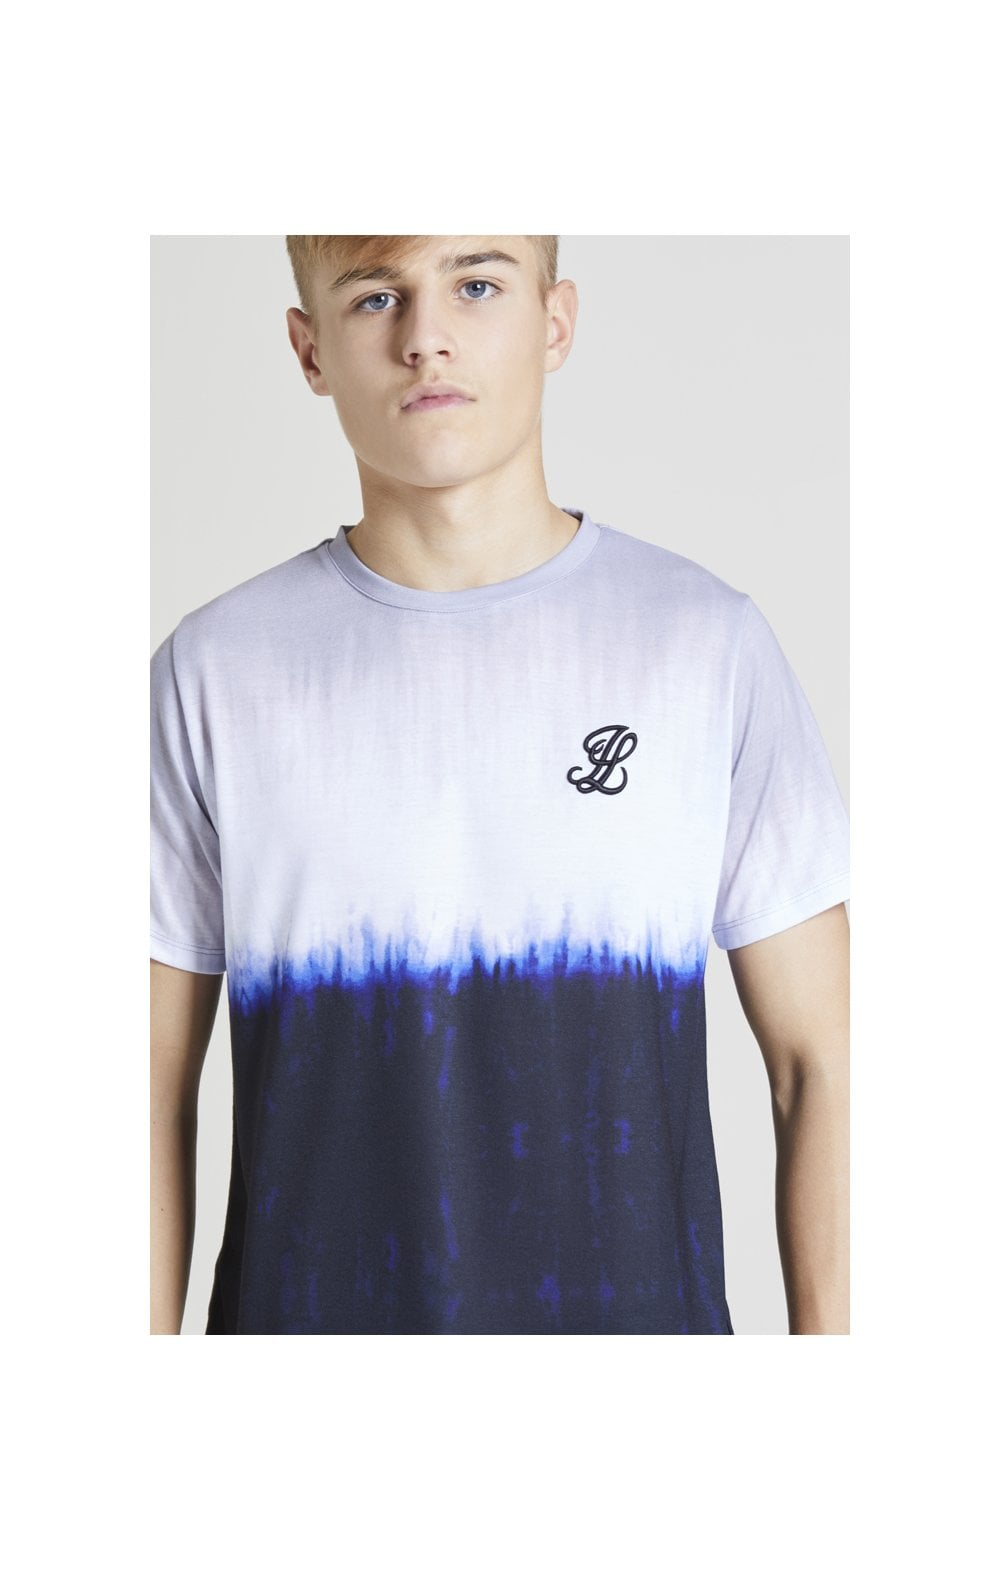 Illusive London Tie Dye Fade Tee - Grey, Navy & white